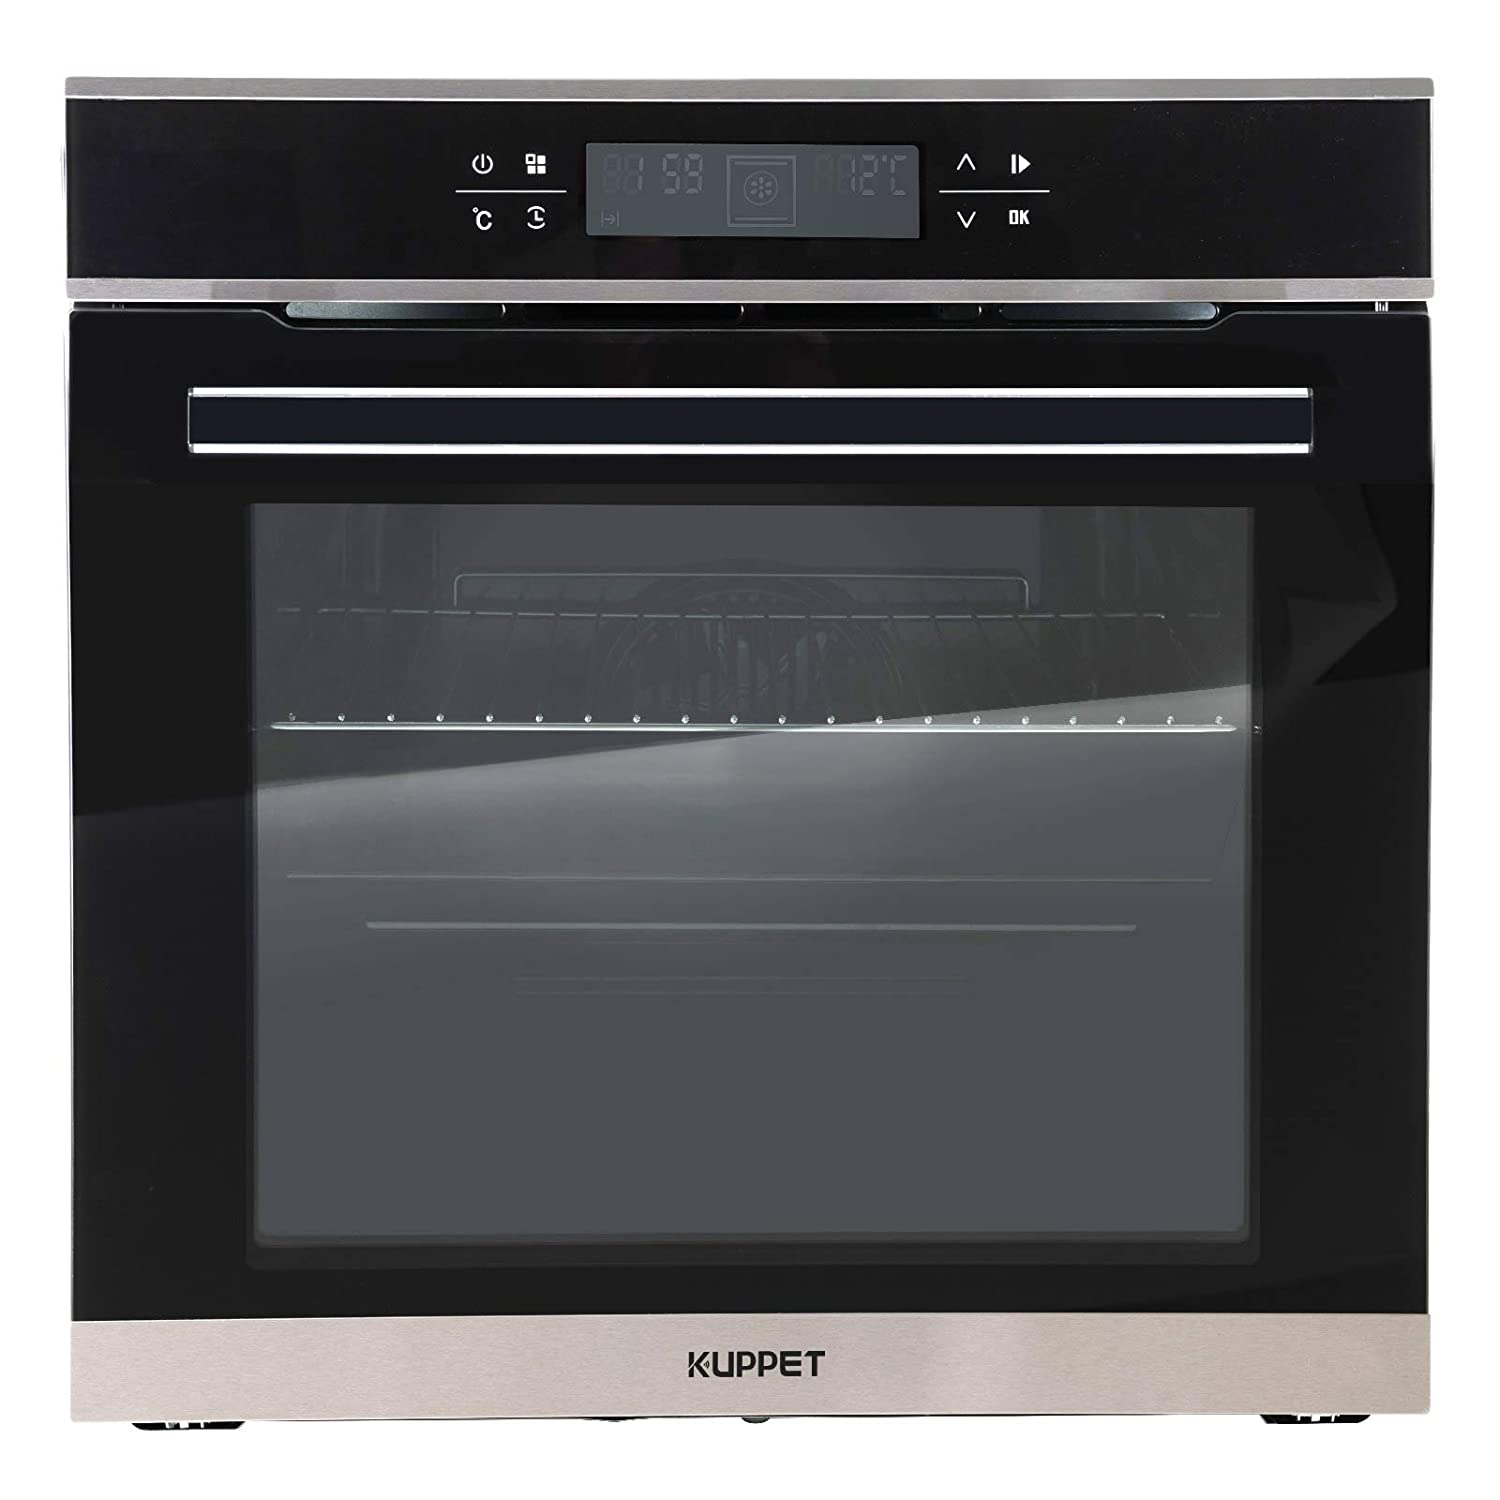 "KUPPET 24"" Electric Single Wall Oven with 10 Functions, Tempered Glass, Digital Display, Touch Controls, Built-In or Under-Couter, Faster Cooking Convection E750200-H1"